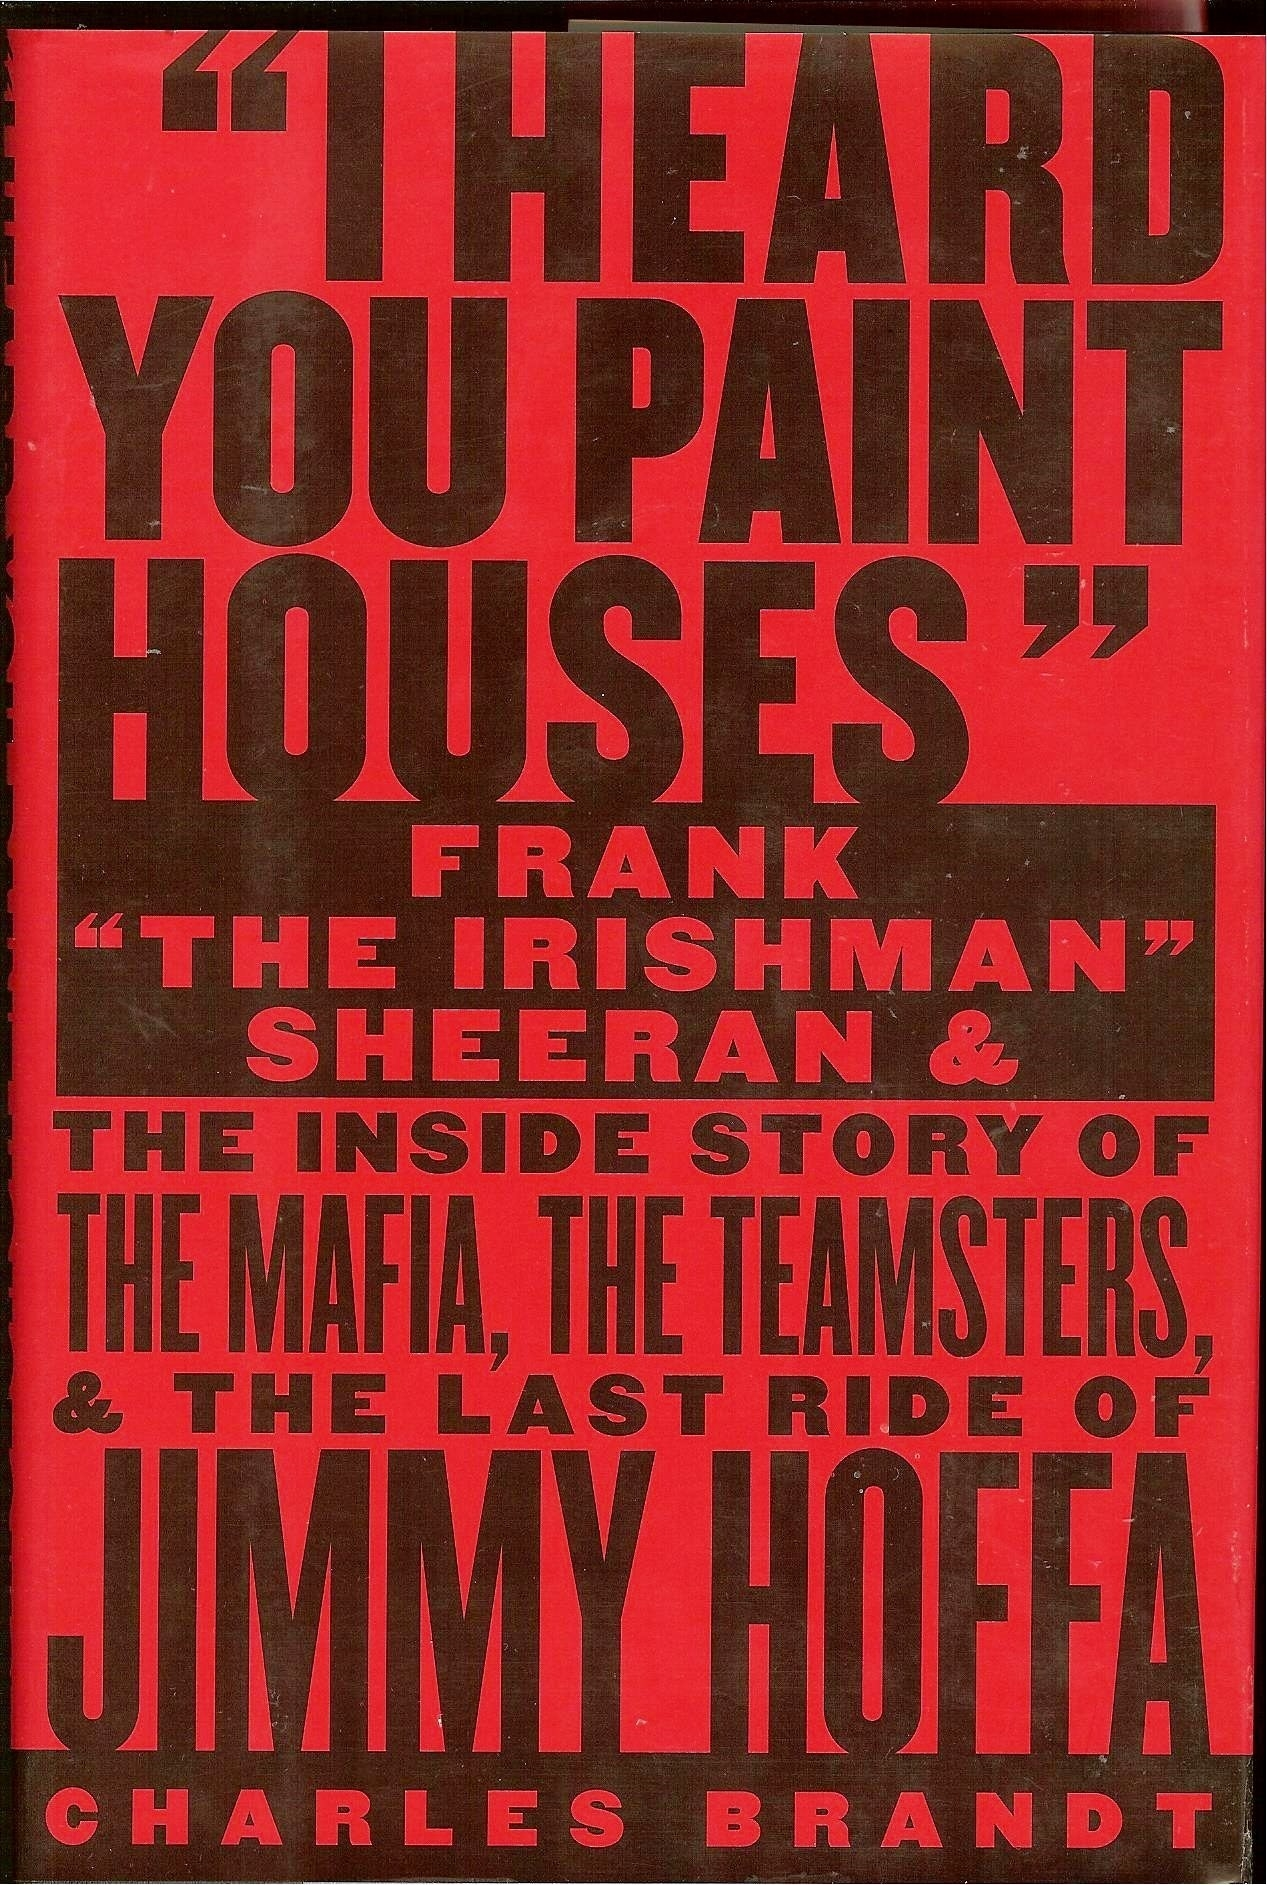 the cover of i heard you paint houses by Charles brandt